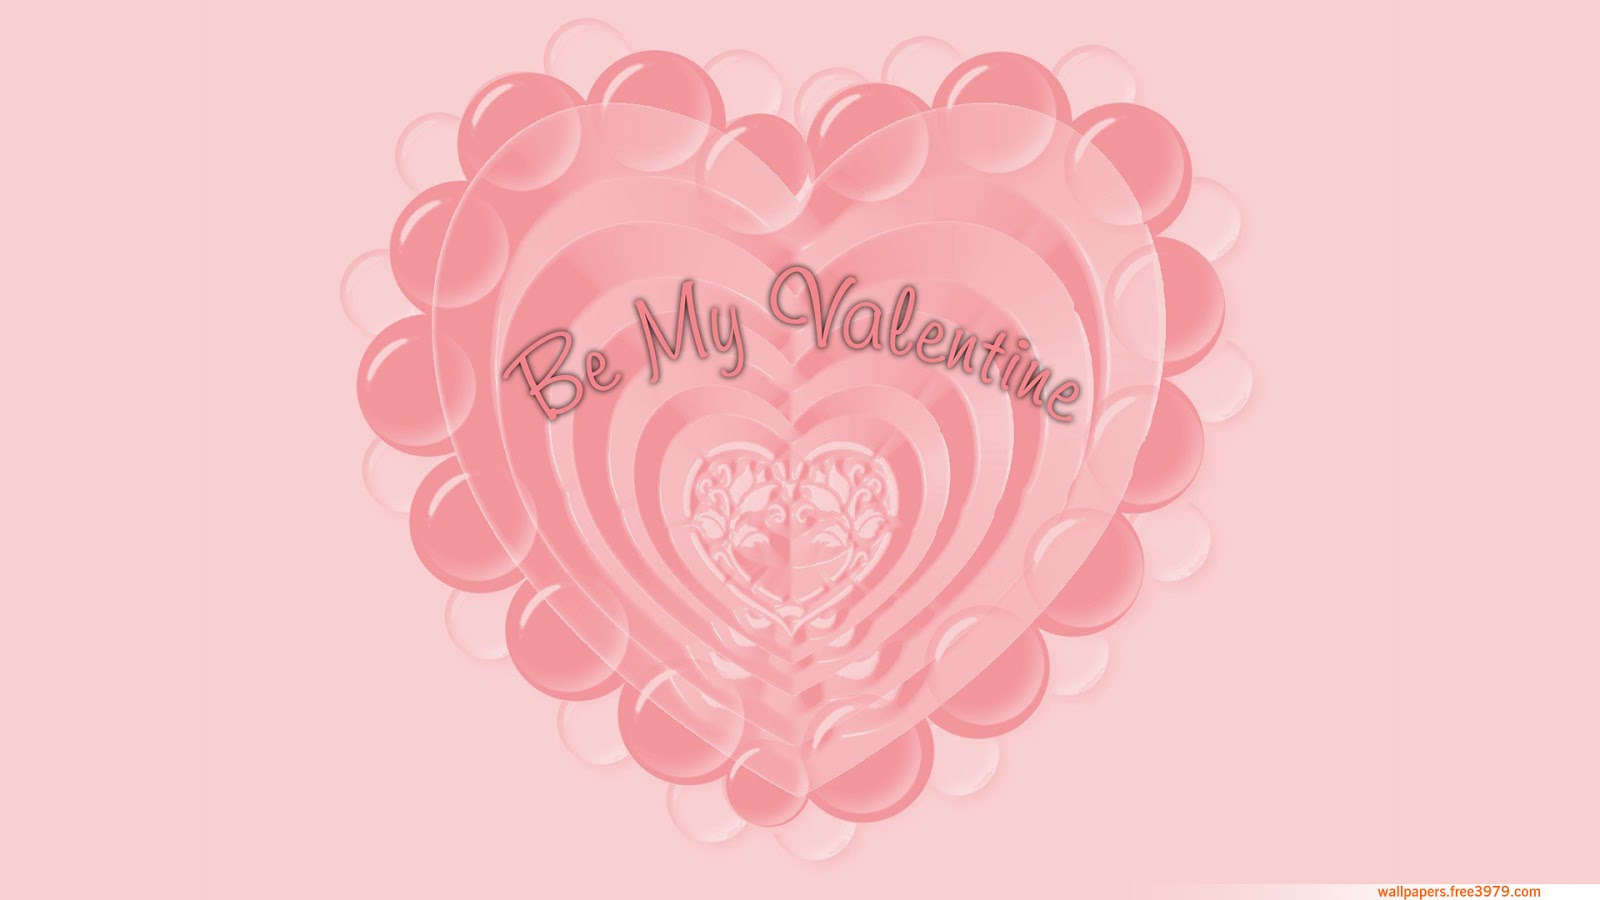 Heart Wallpapers Valentine's Day